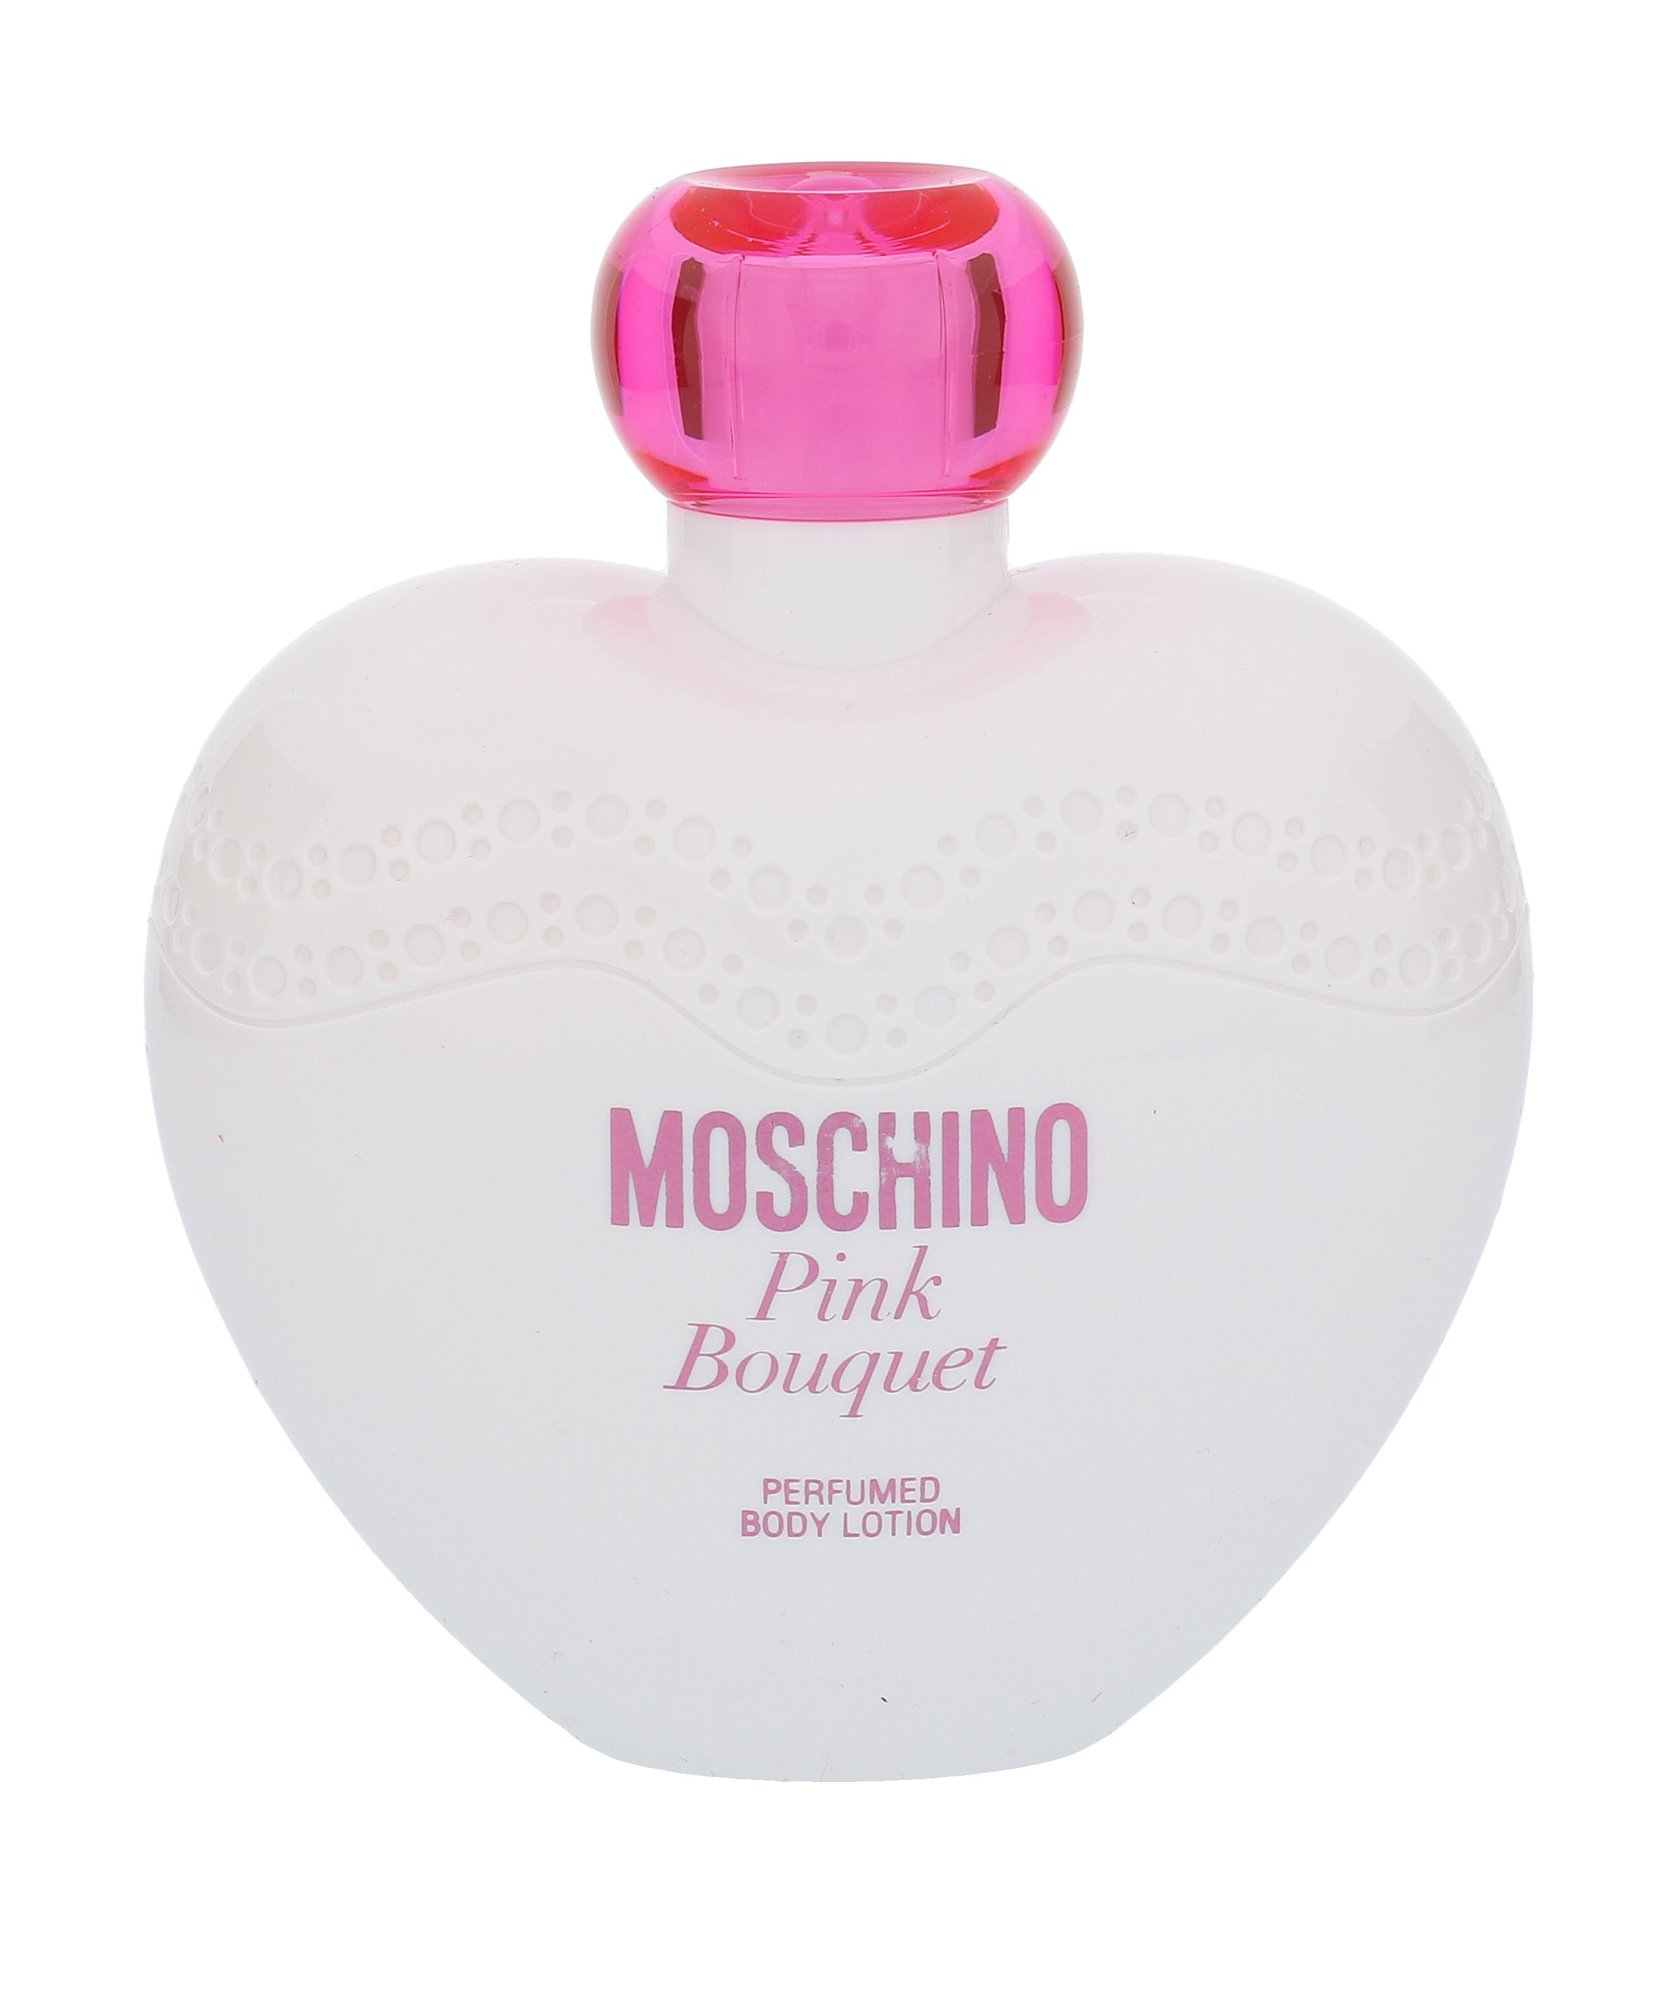 Moschino Pink Bouquet Body lotion 200ml